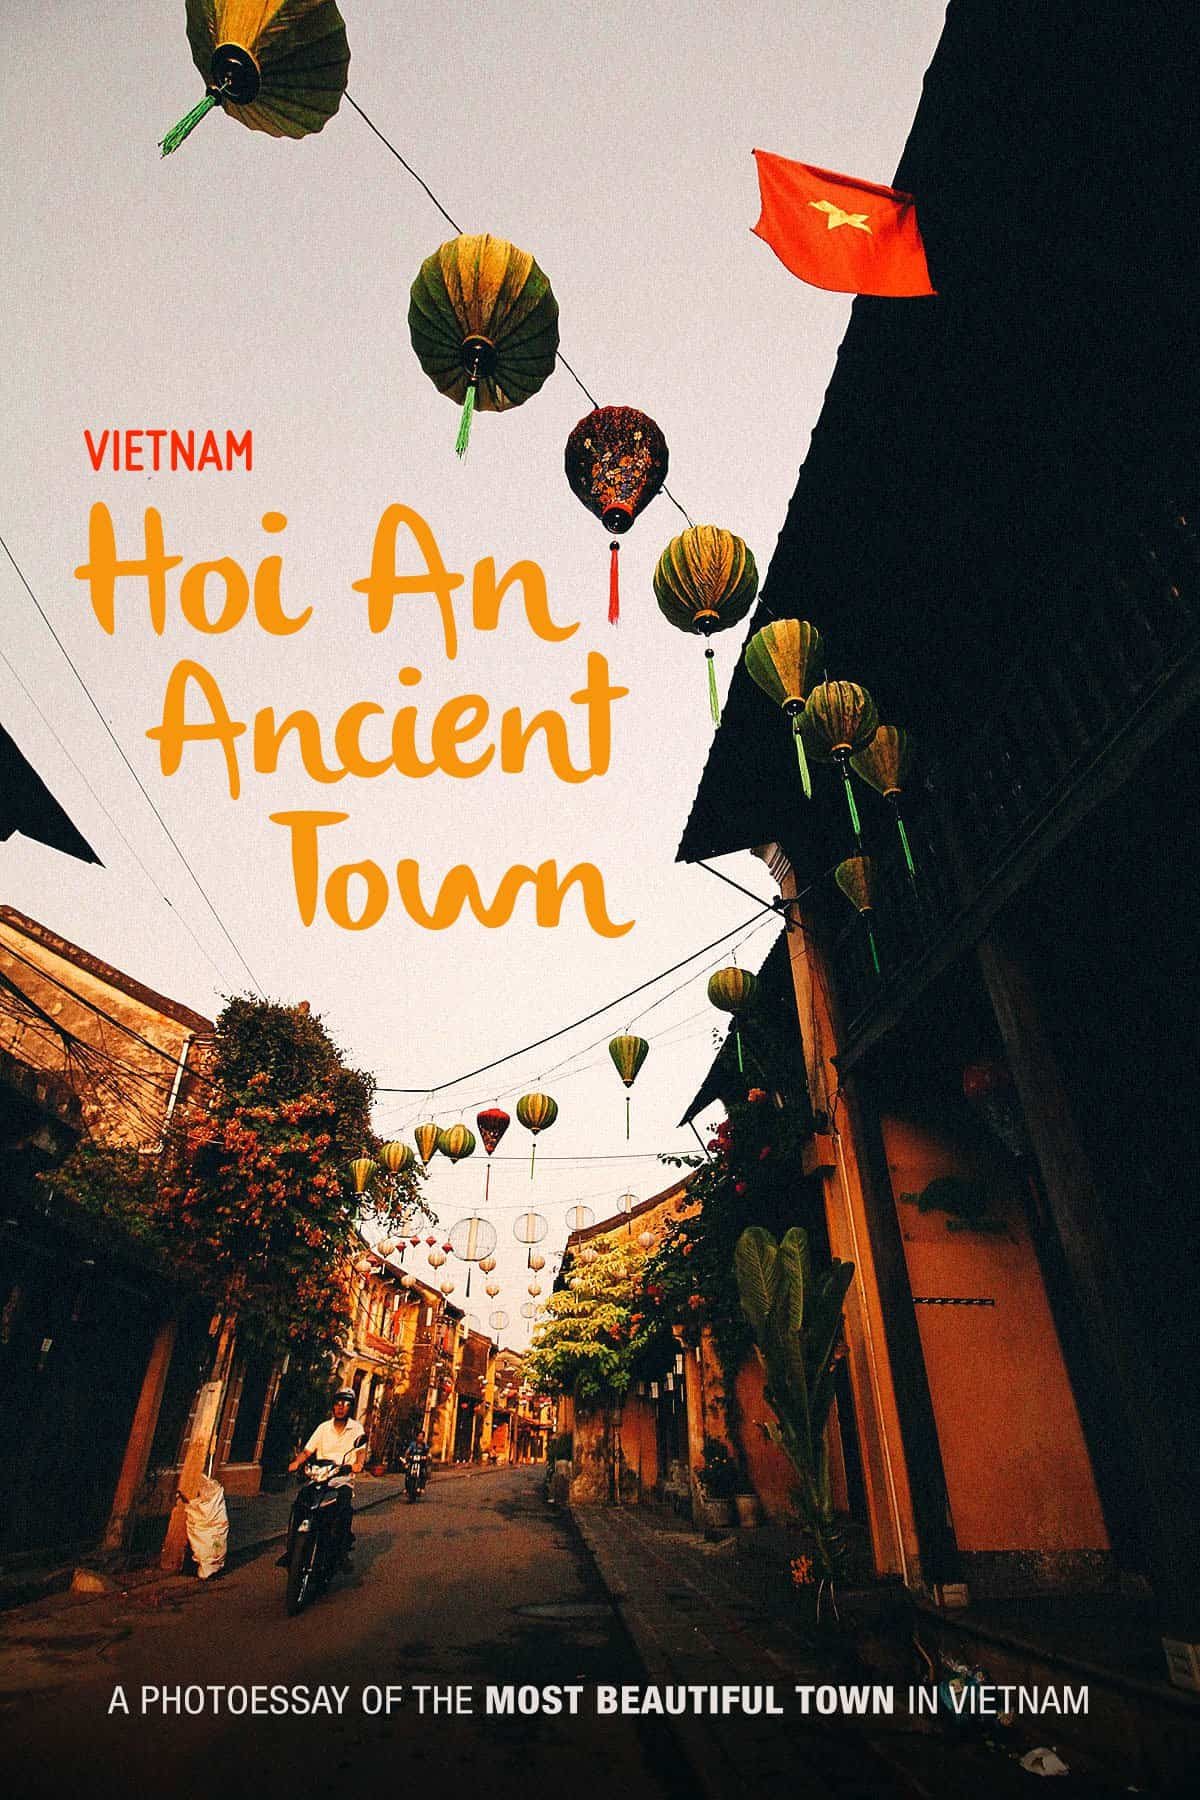 Hoi An Ancient Town at sunrise